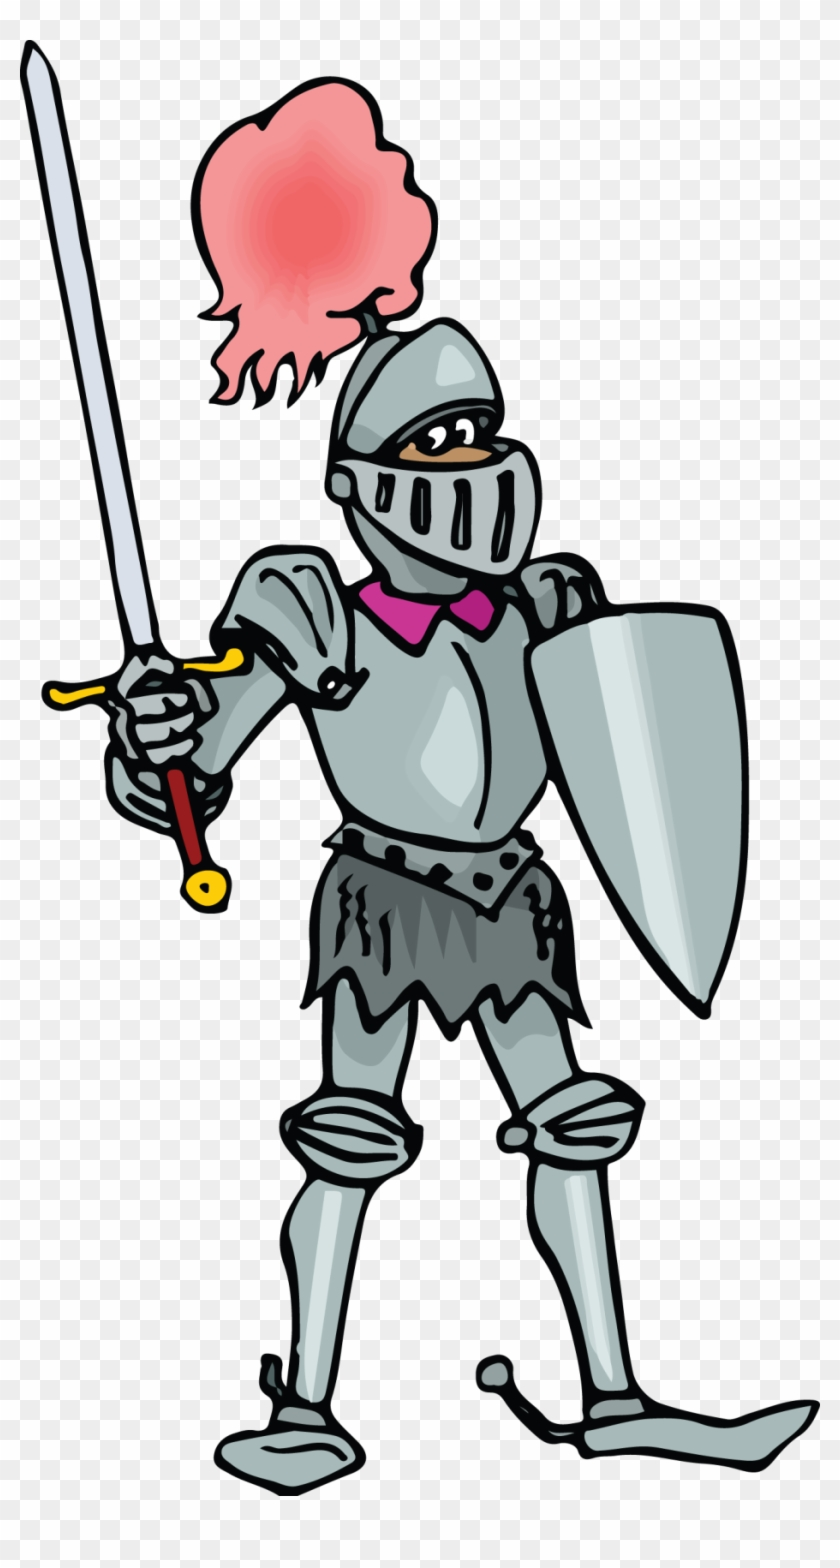 Knights clipart armour. Knight middle ages clip